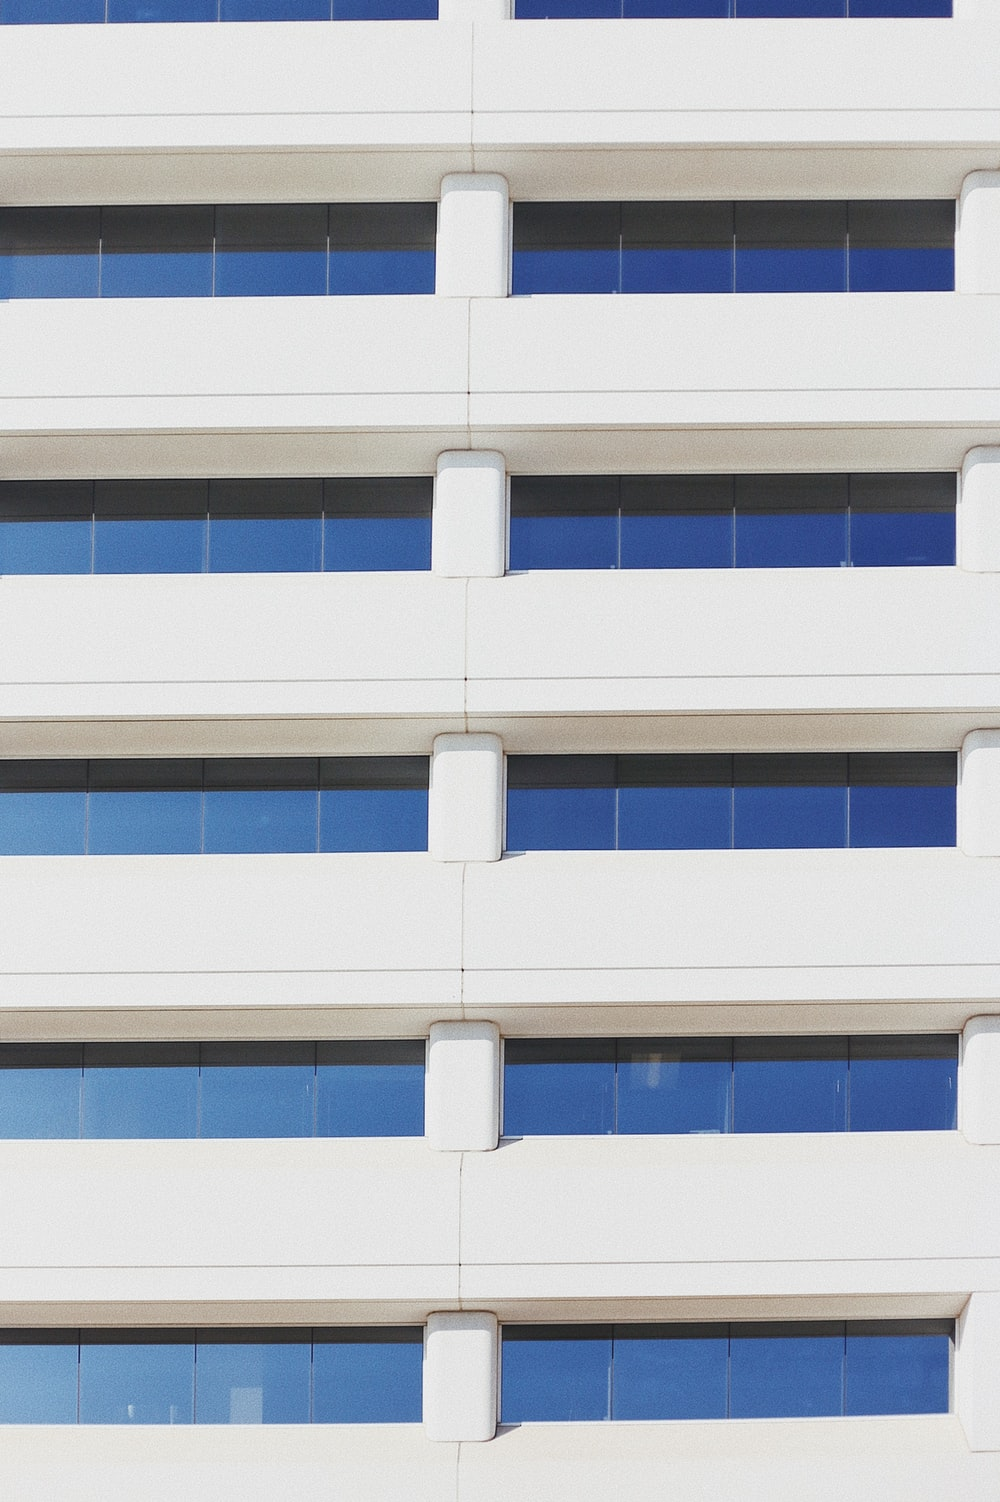 white high rise building with glass window